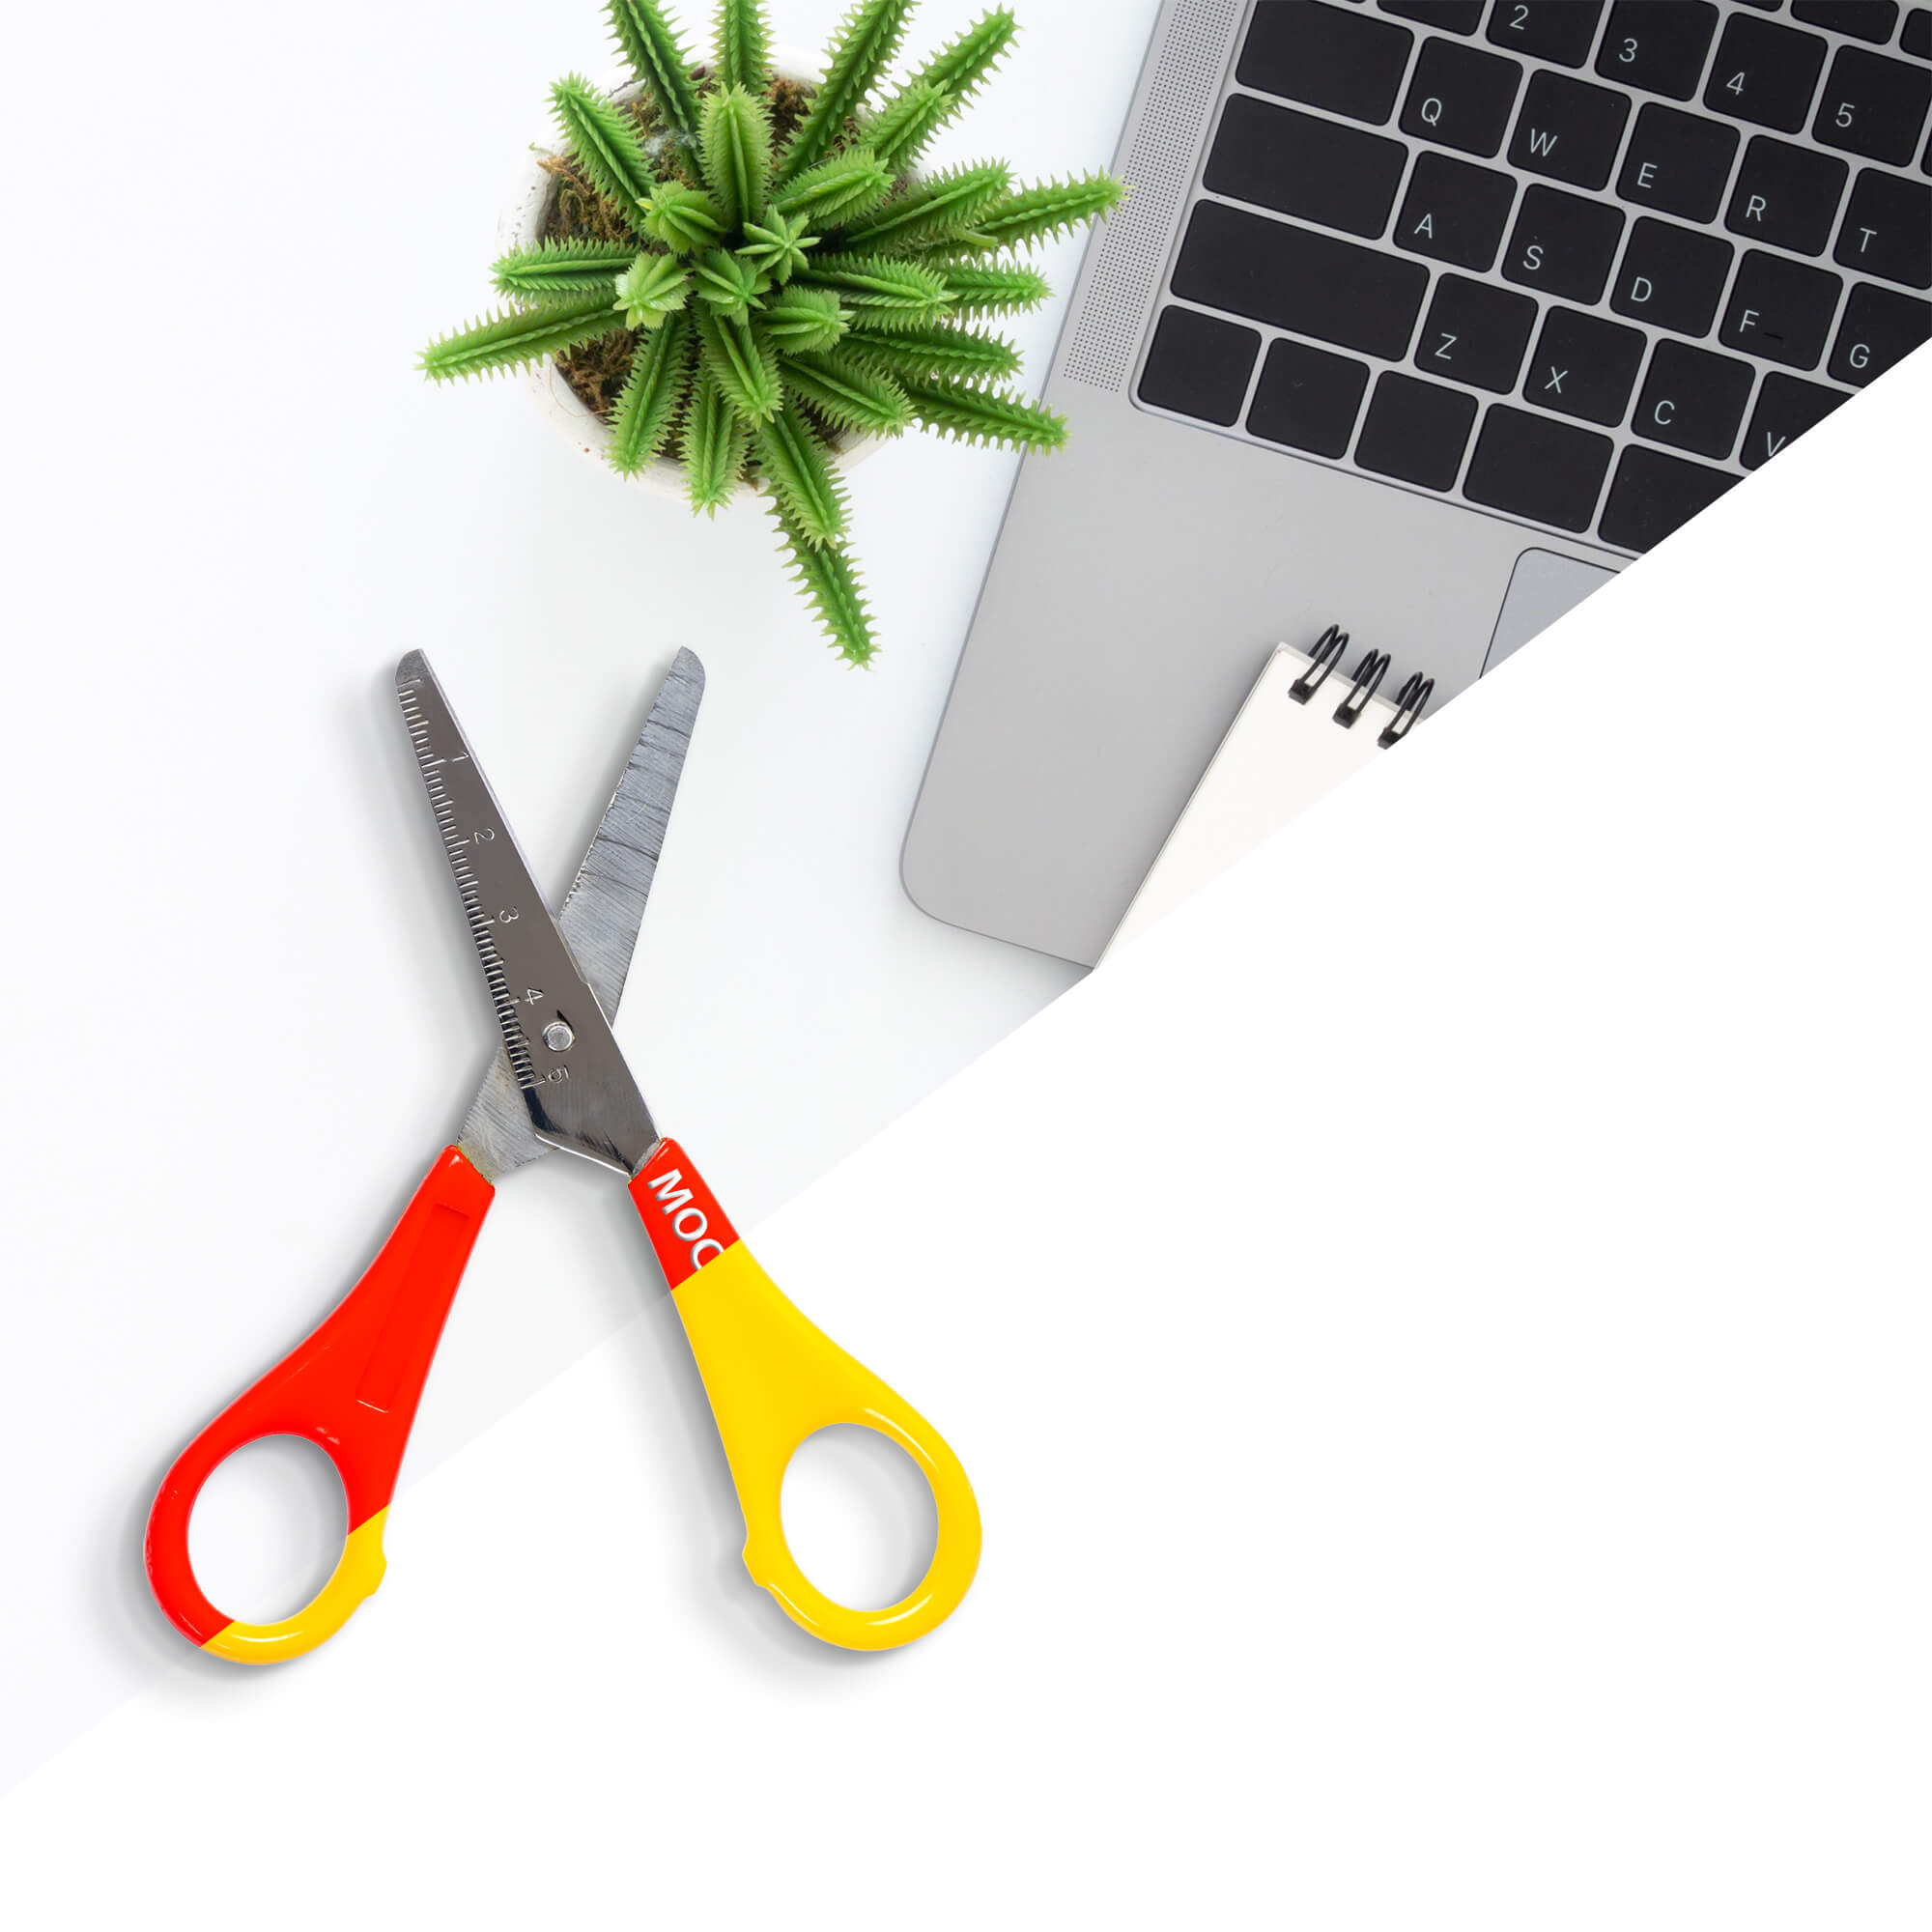 Editable Free Scissors Mockup PSD Template